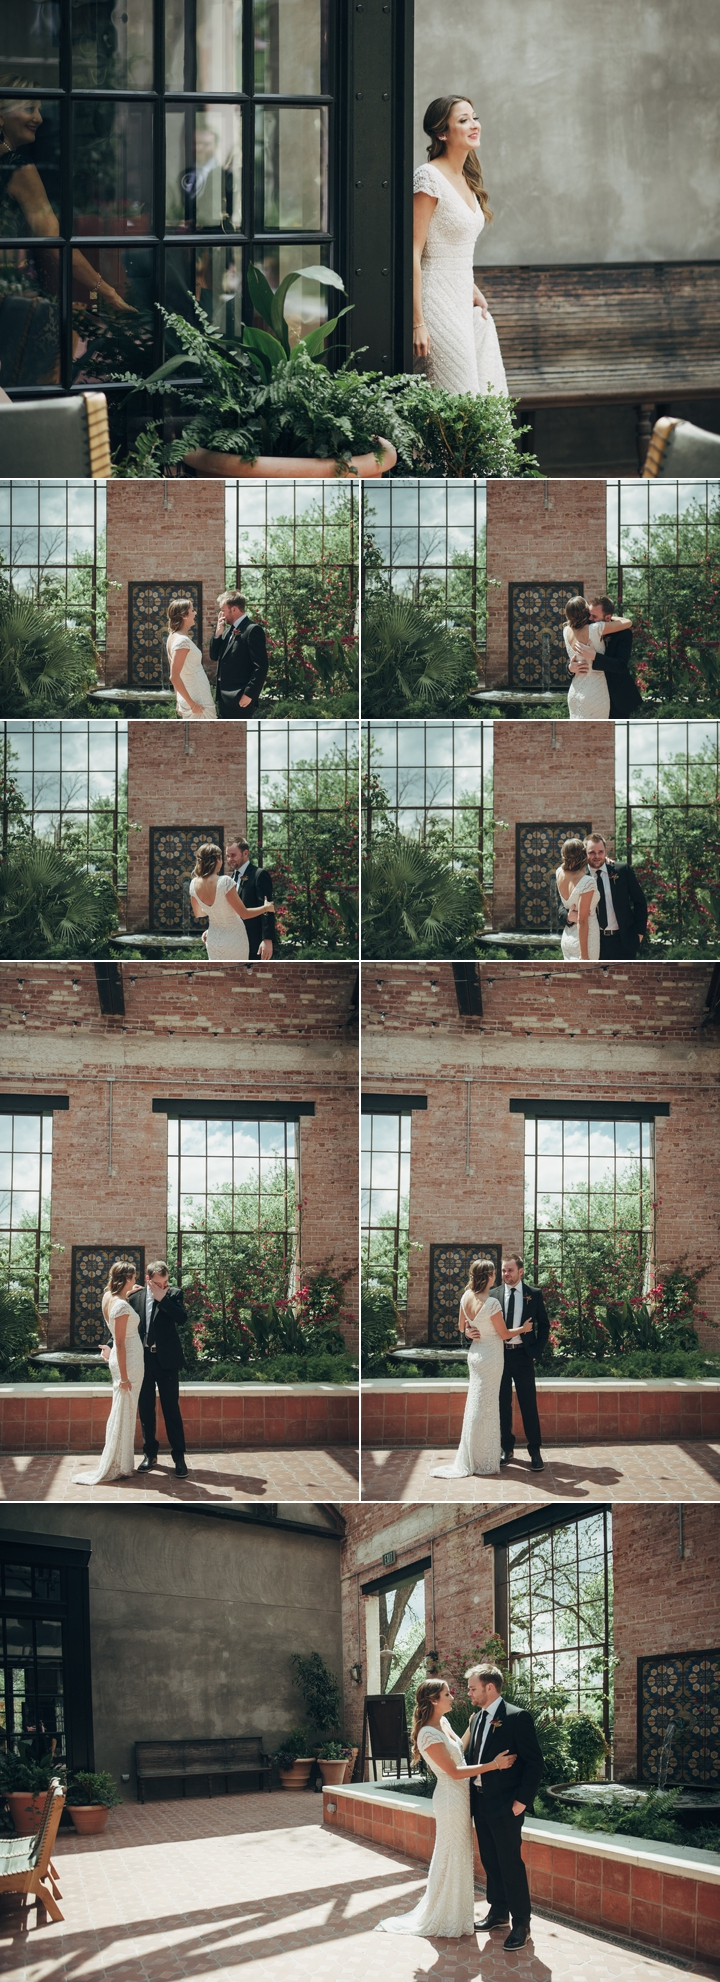 Denver-Wedding-Photographers-AJ 25.jpg